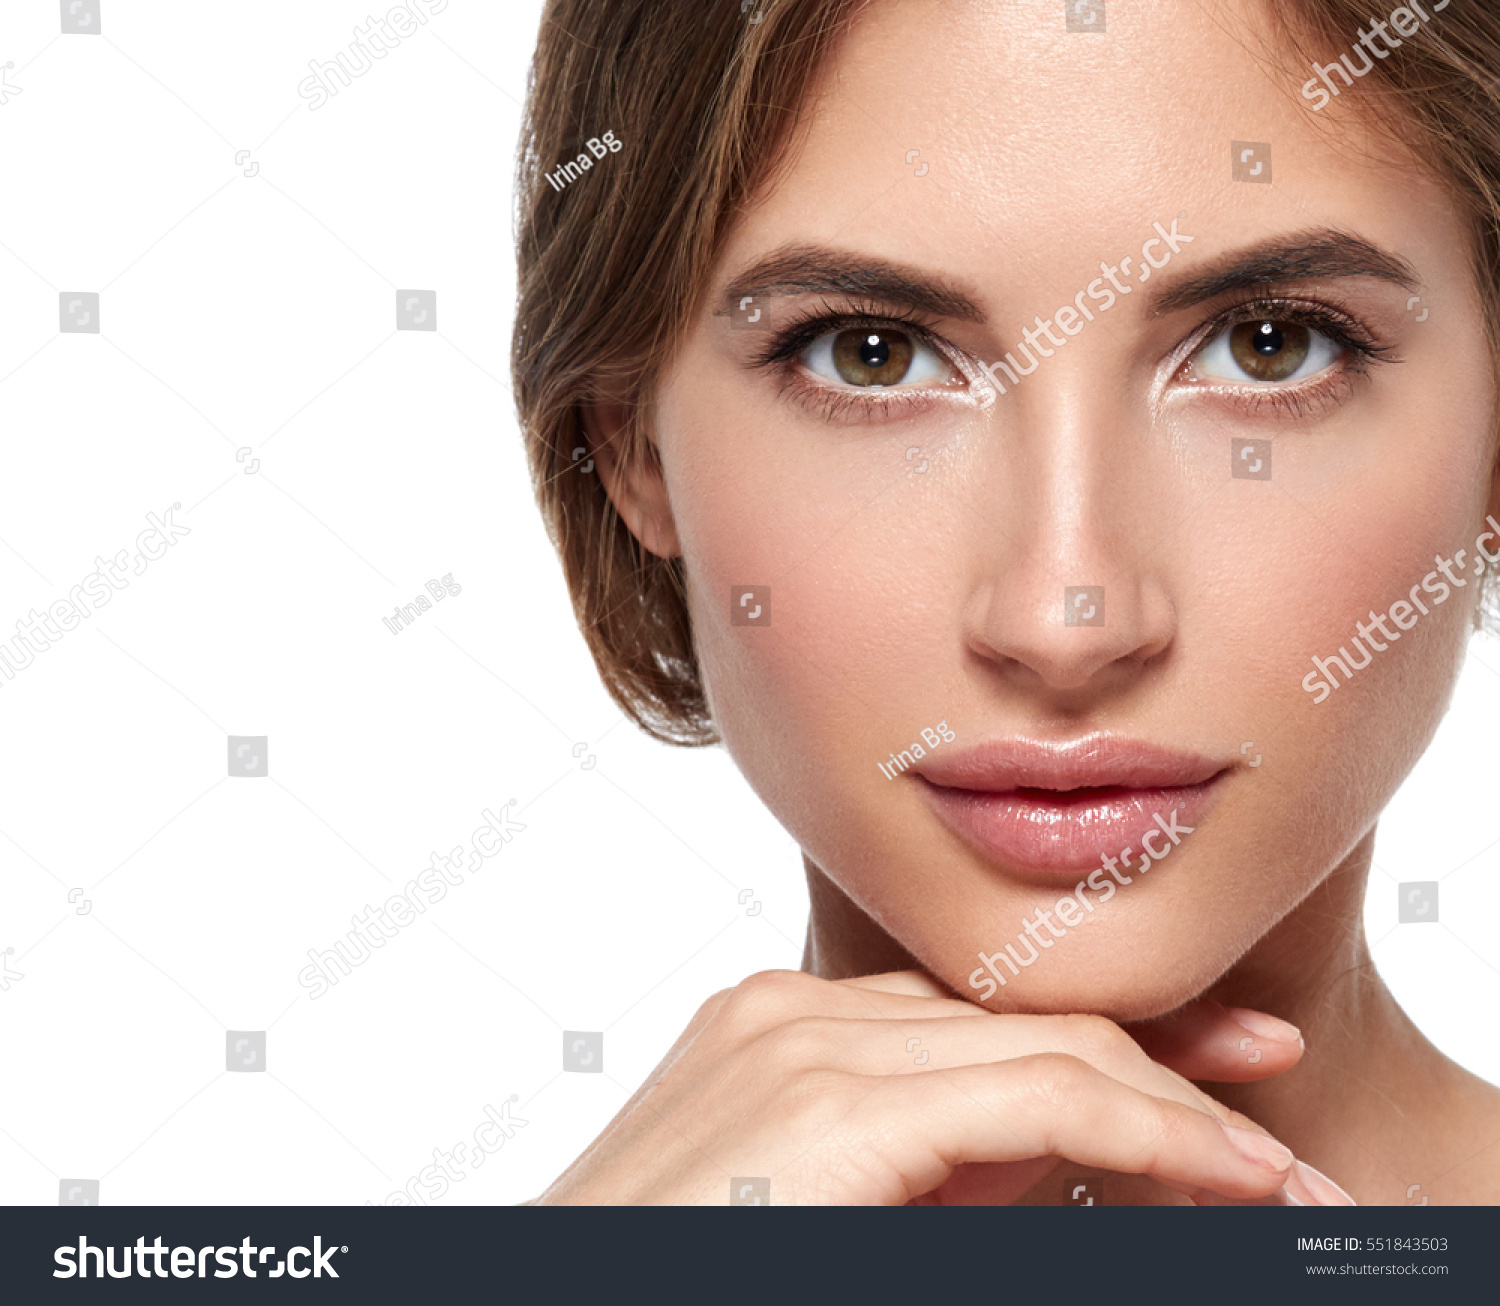 Beauty Woman Face Portrait Beautiful Spa Stock Photo & Image ...